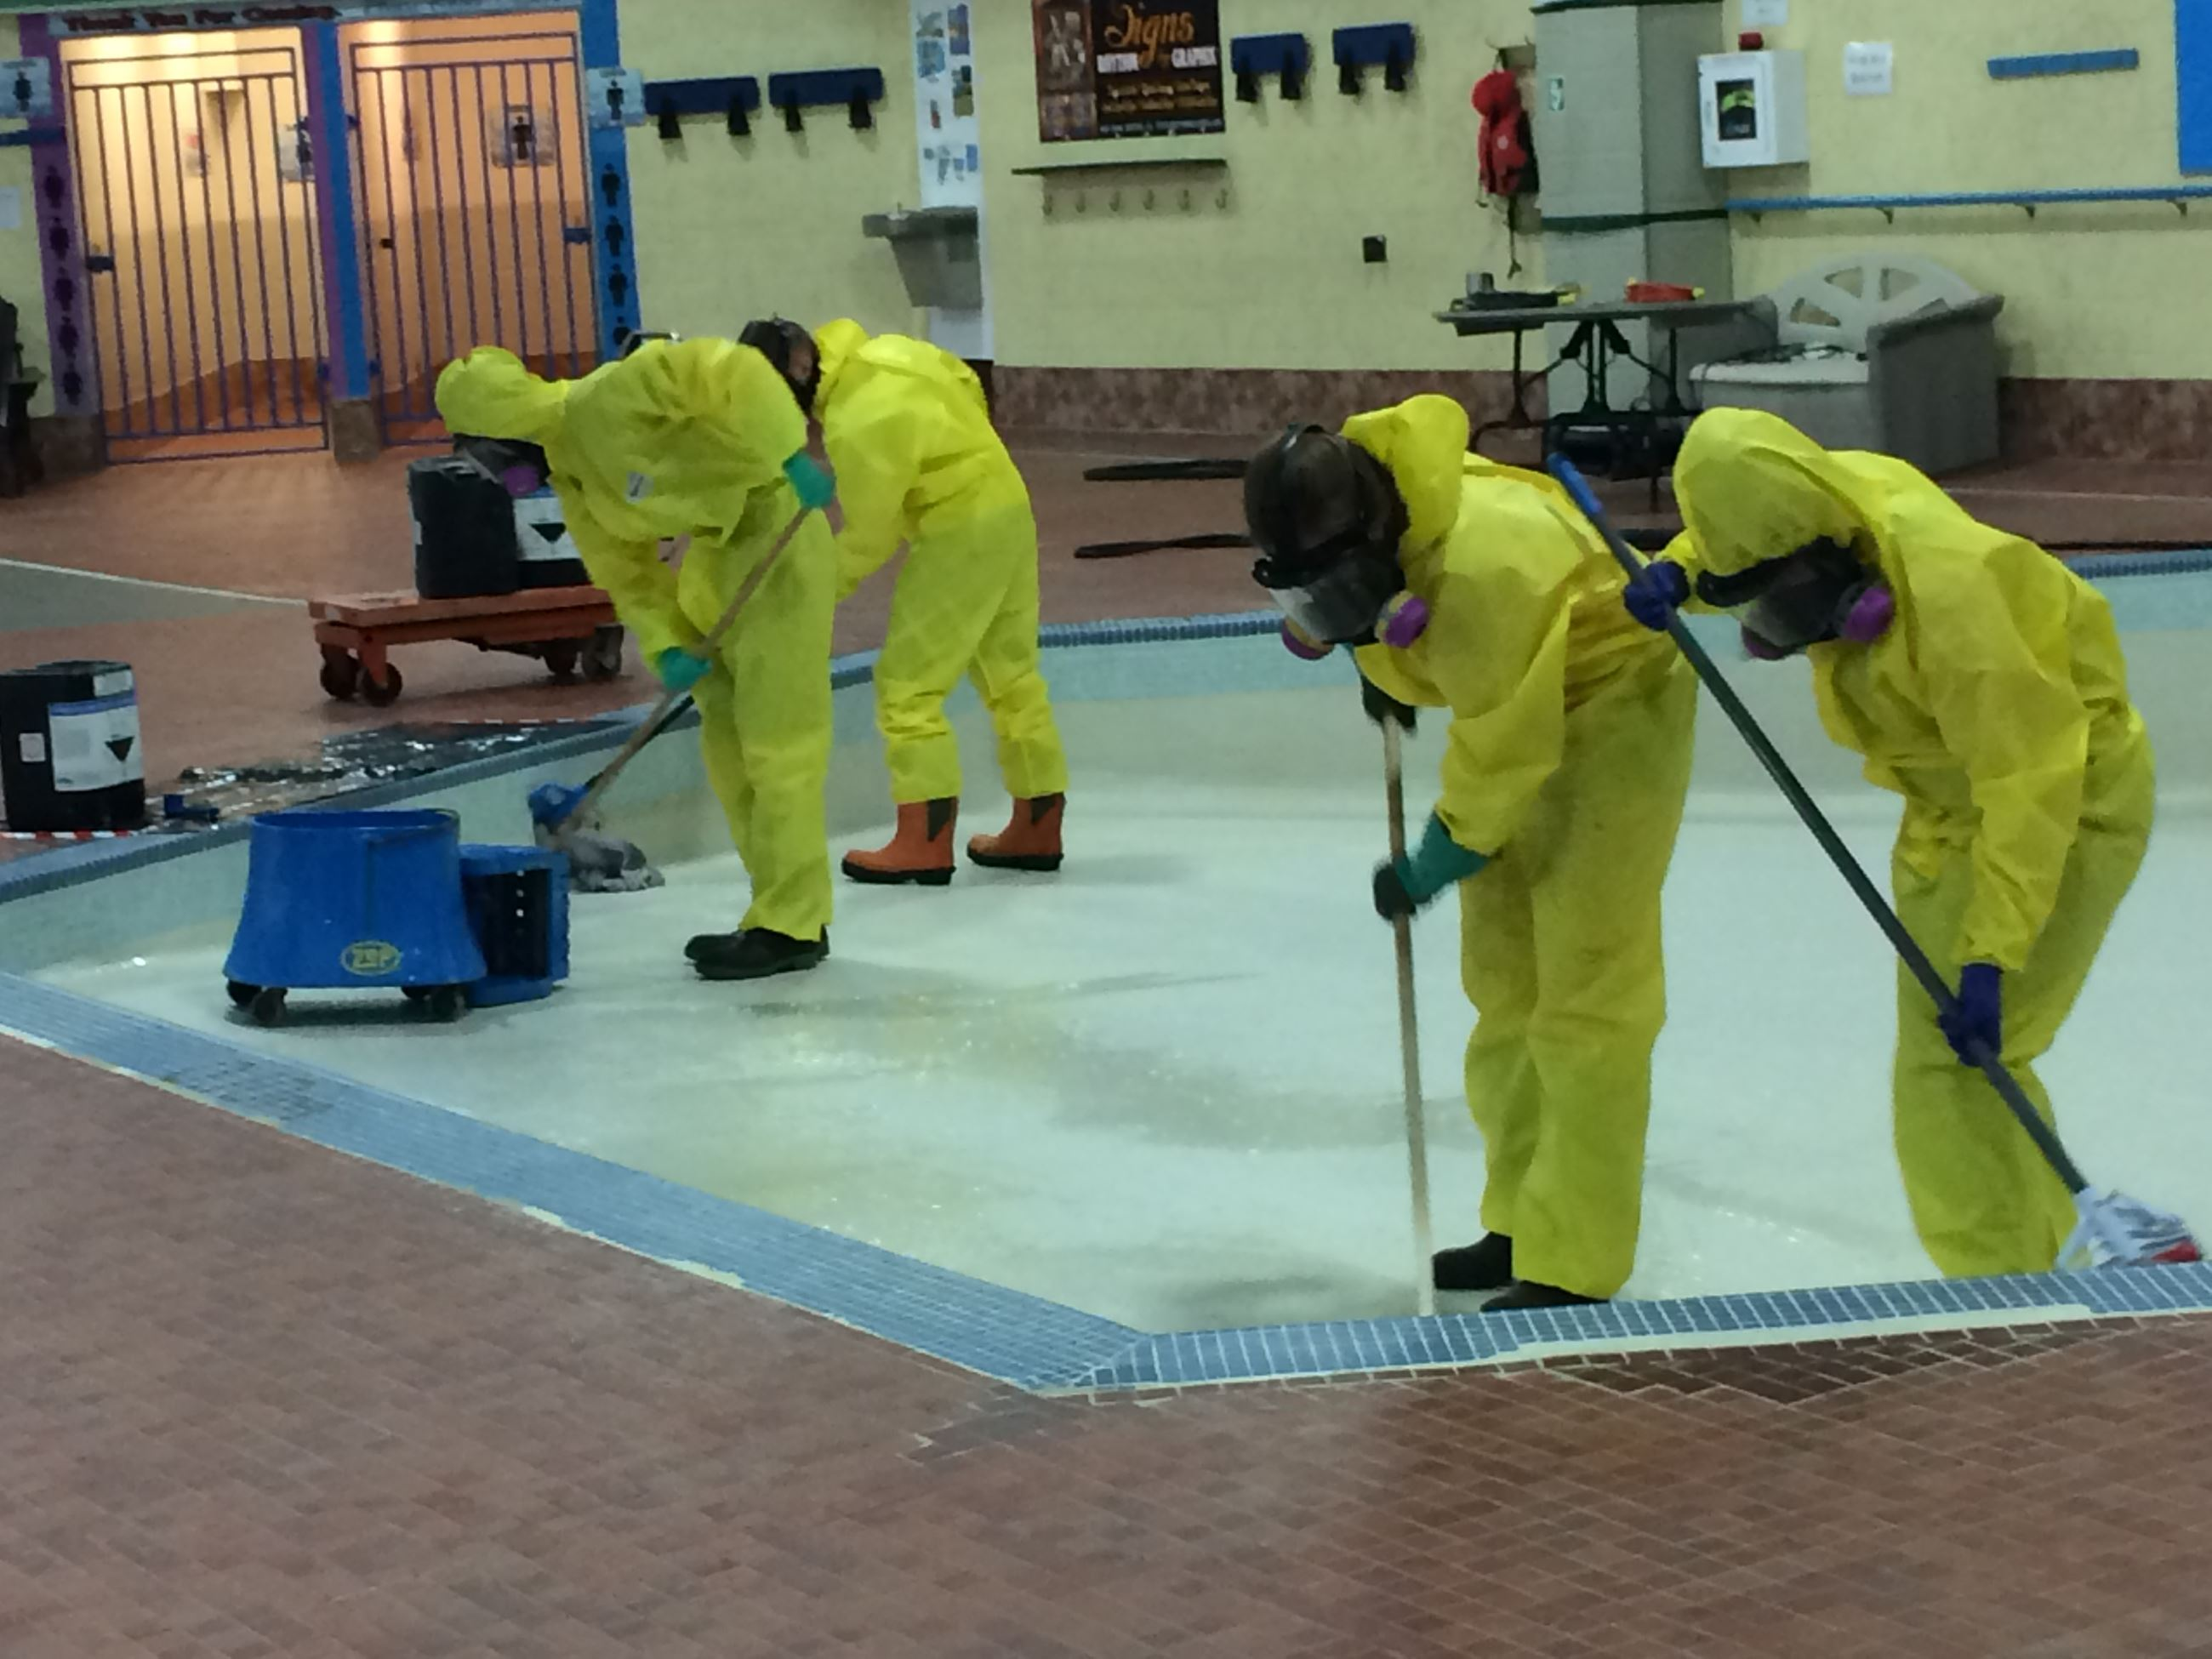 Two lifeguards spread the acid solution as two others scrub to remove scale.